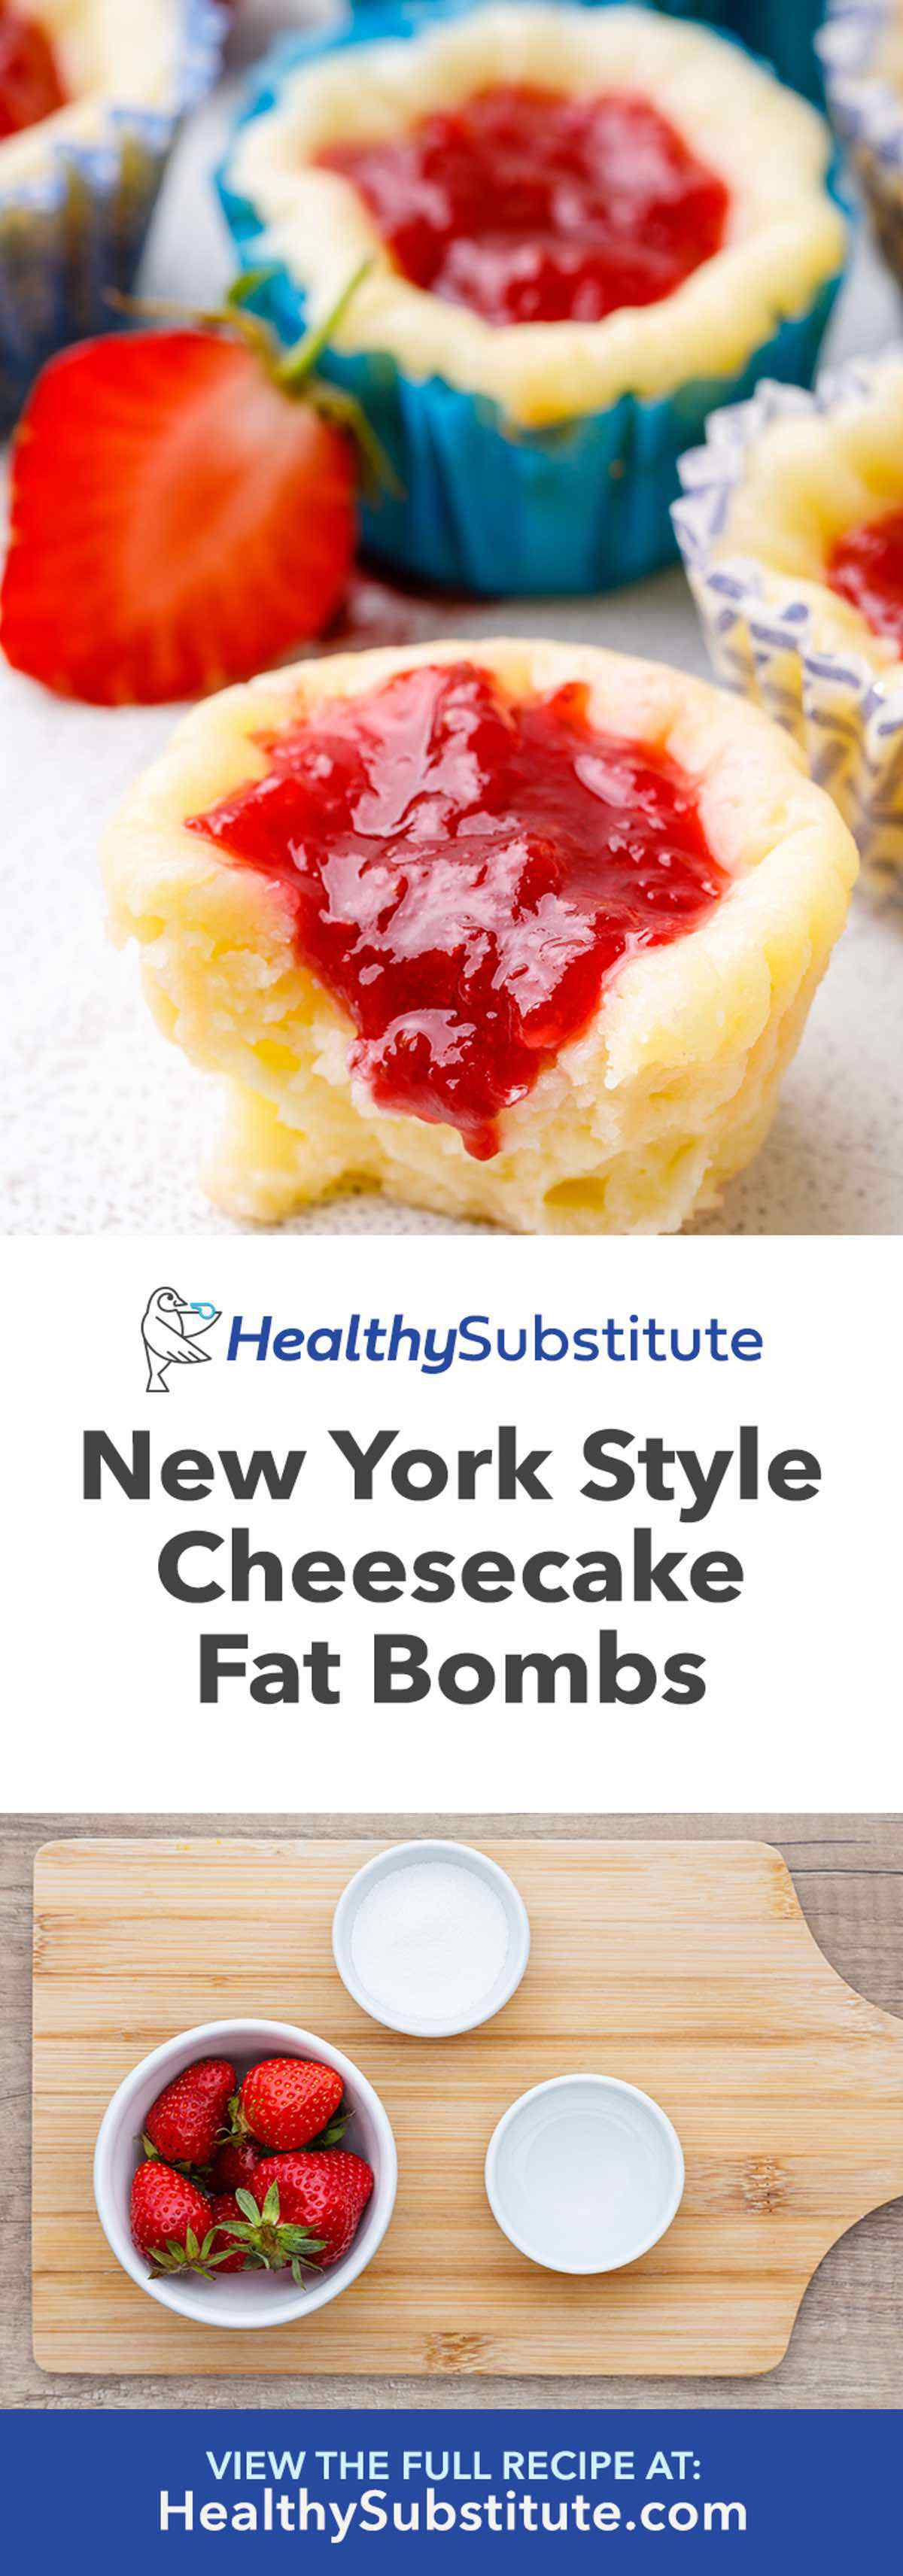 New York Style Cheesecake Fat Bombs